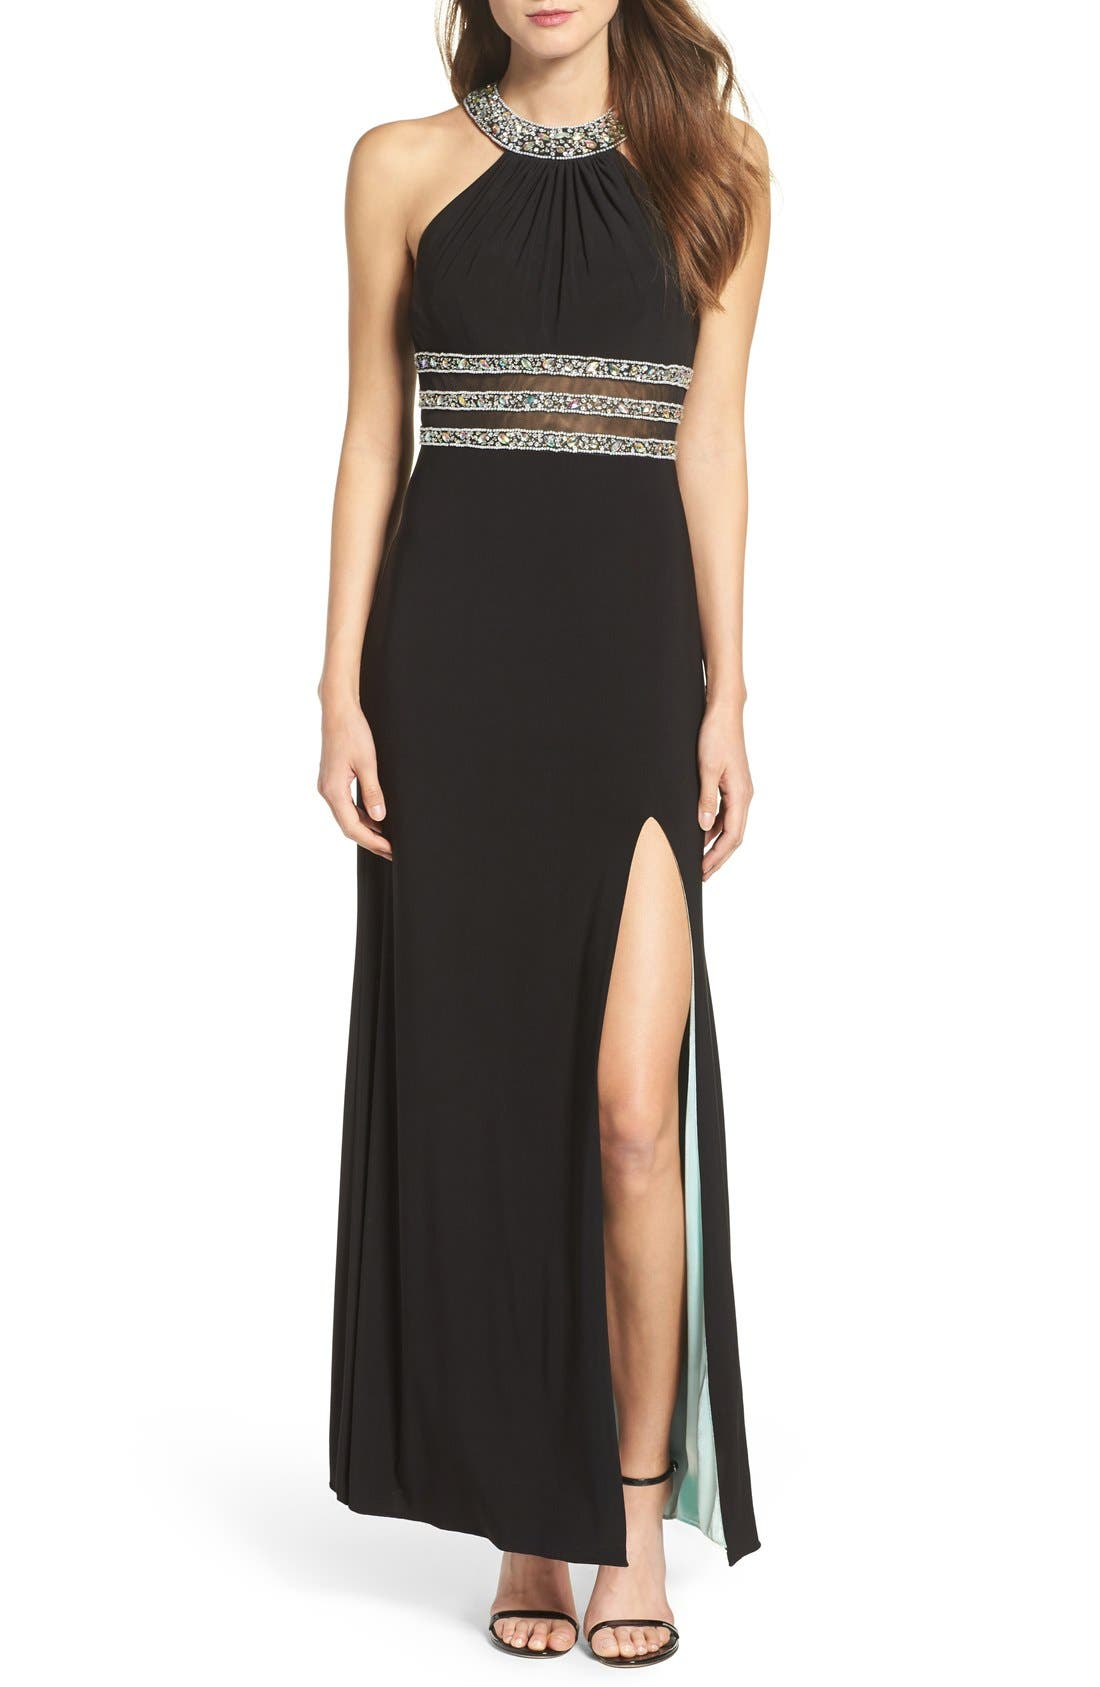 BLONDIE NITES Beaded Halter Dress